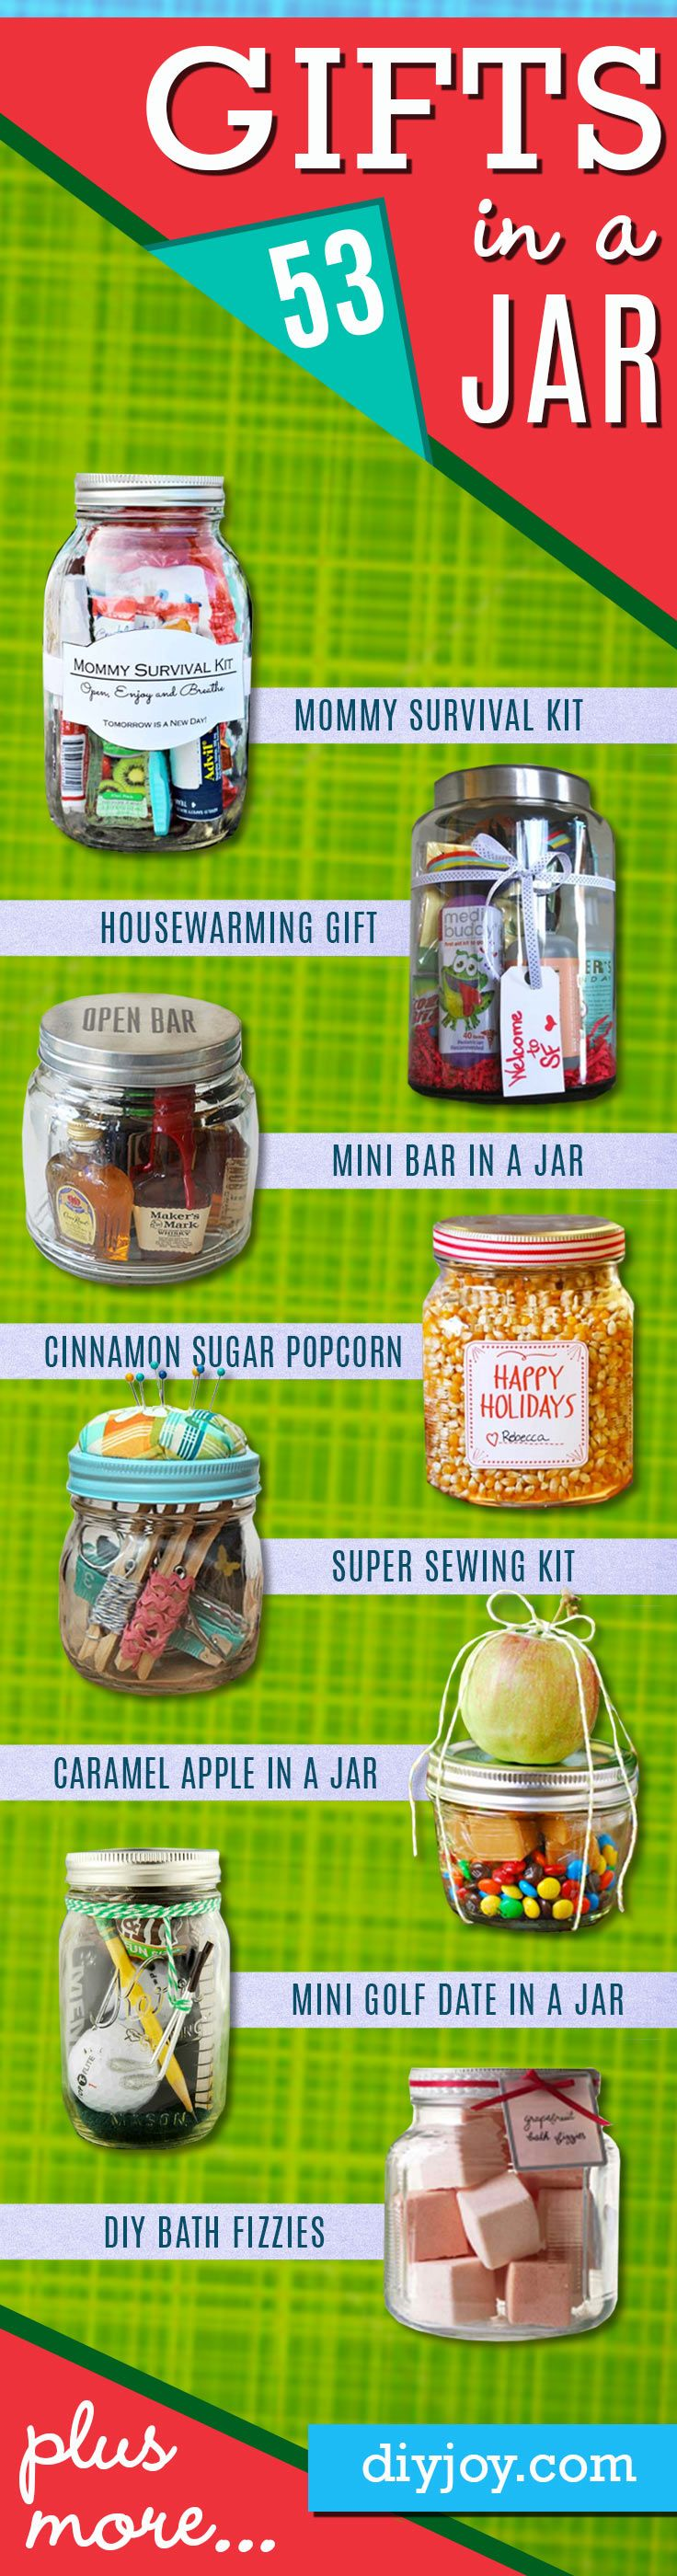 Homemade DIY Gifts in A Jar | Best Mason Jar Cookie Mixes and Recipes, Alcohol Mixers | Fun Gift Ideas for Men, Women, Teens, Kids, Teacher, Mom. Christmas, Holiday, Birthday and Easy Last Minute Gifts  http://diyjoy.com/diy-gifts-in-a-jar                                                                                                                                                      More